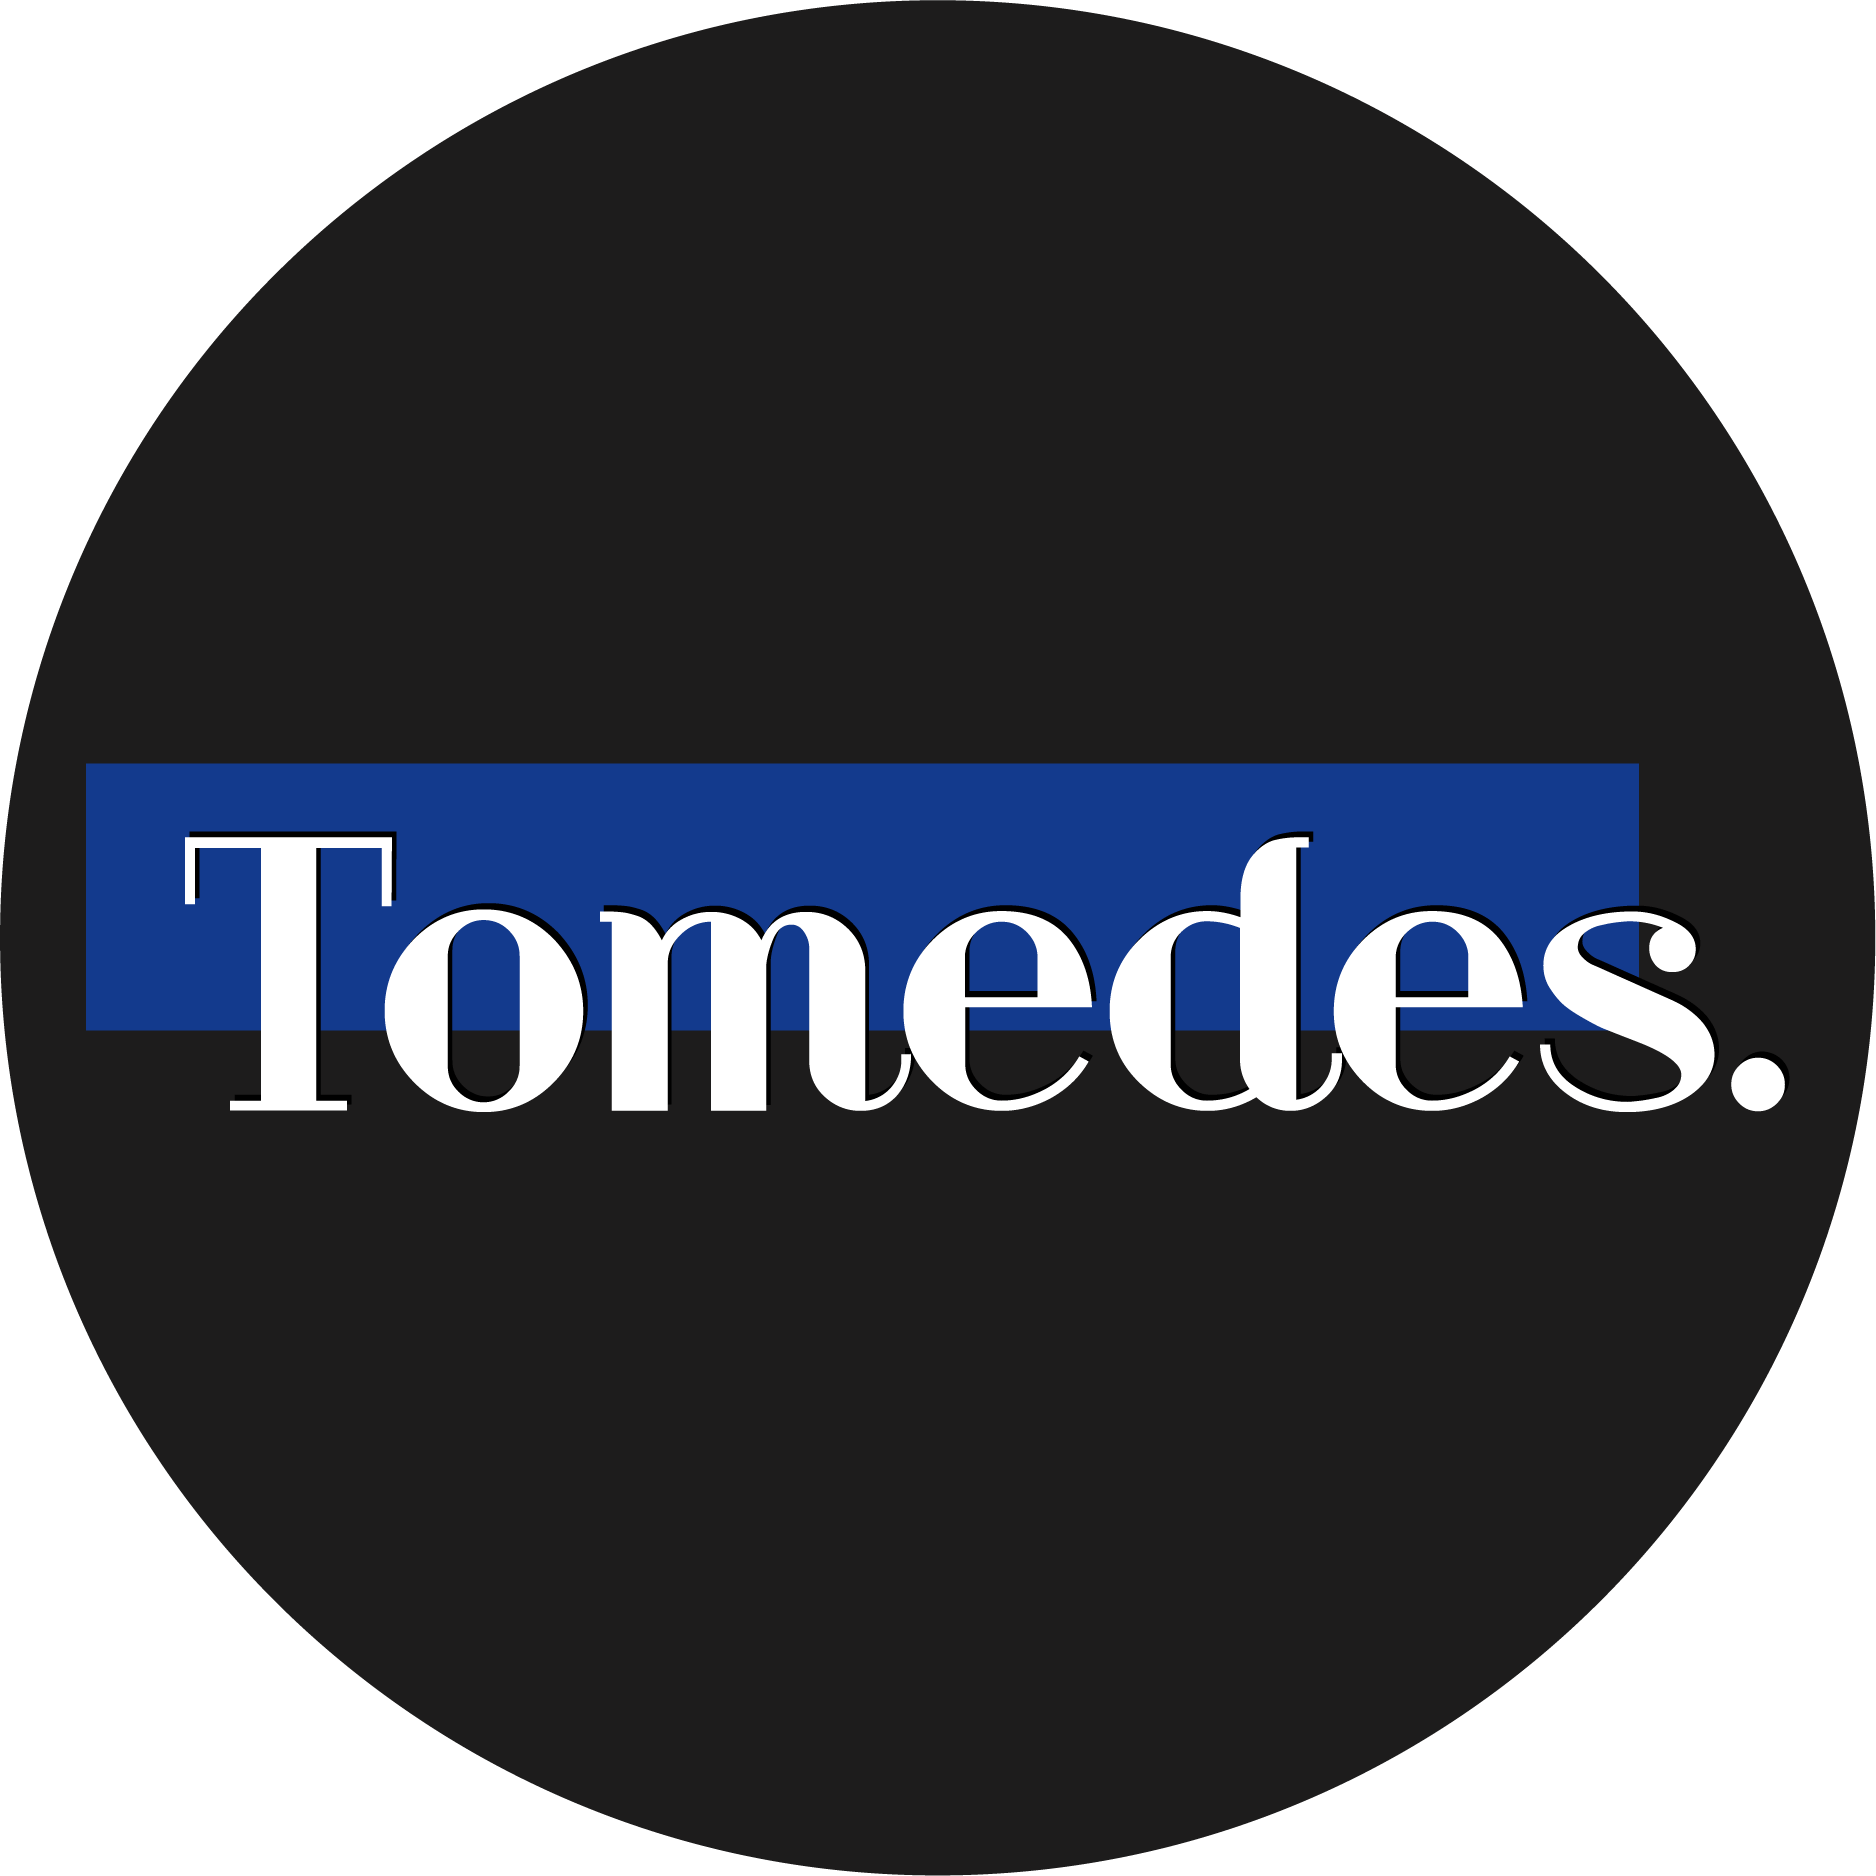 Interview with Tomedes